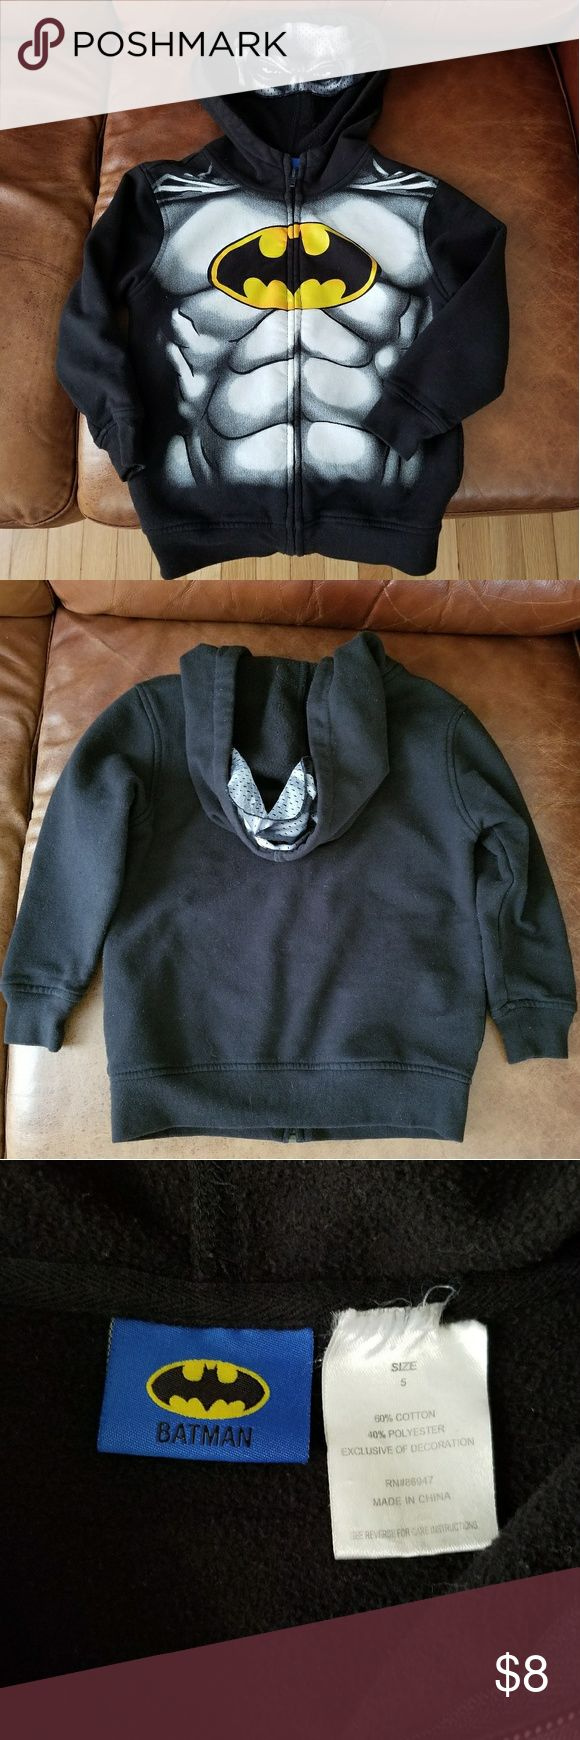 Kid's Batman hoodie Awesome Batman hoodie. Has eye mask on the hood. Great condition, zipper works. No stains or holes. Size 5. $8 Shirts & Tops Sweatshirts & Hoodies